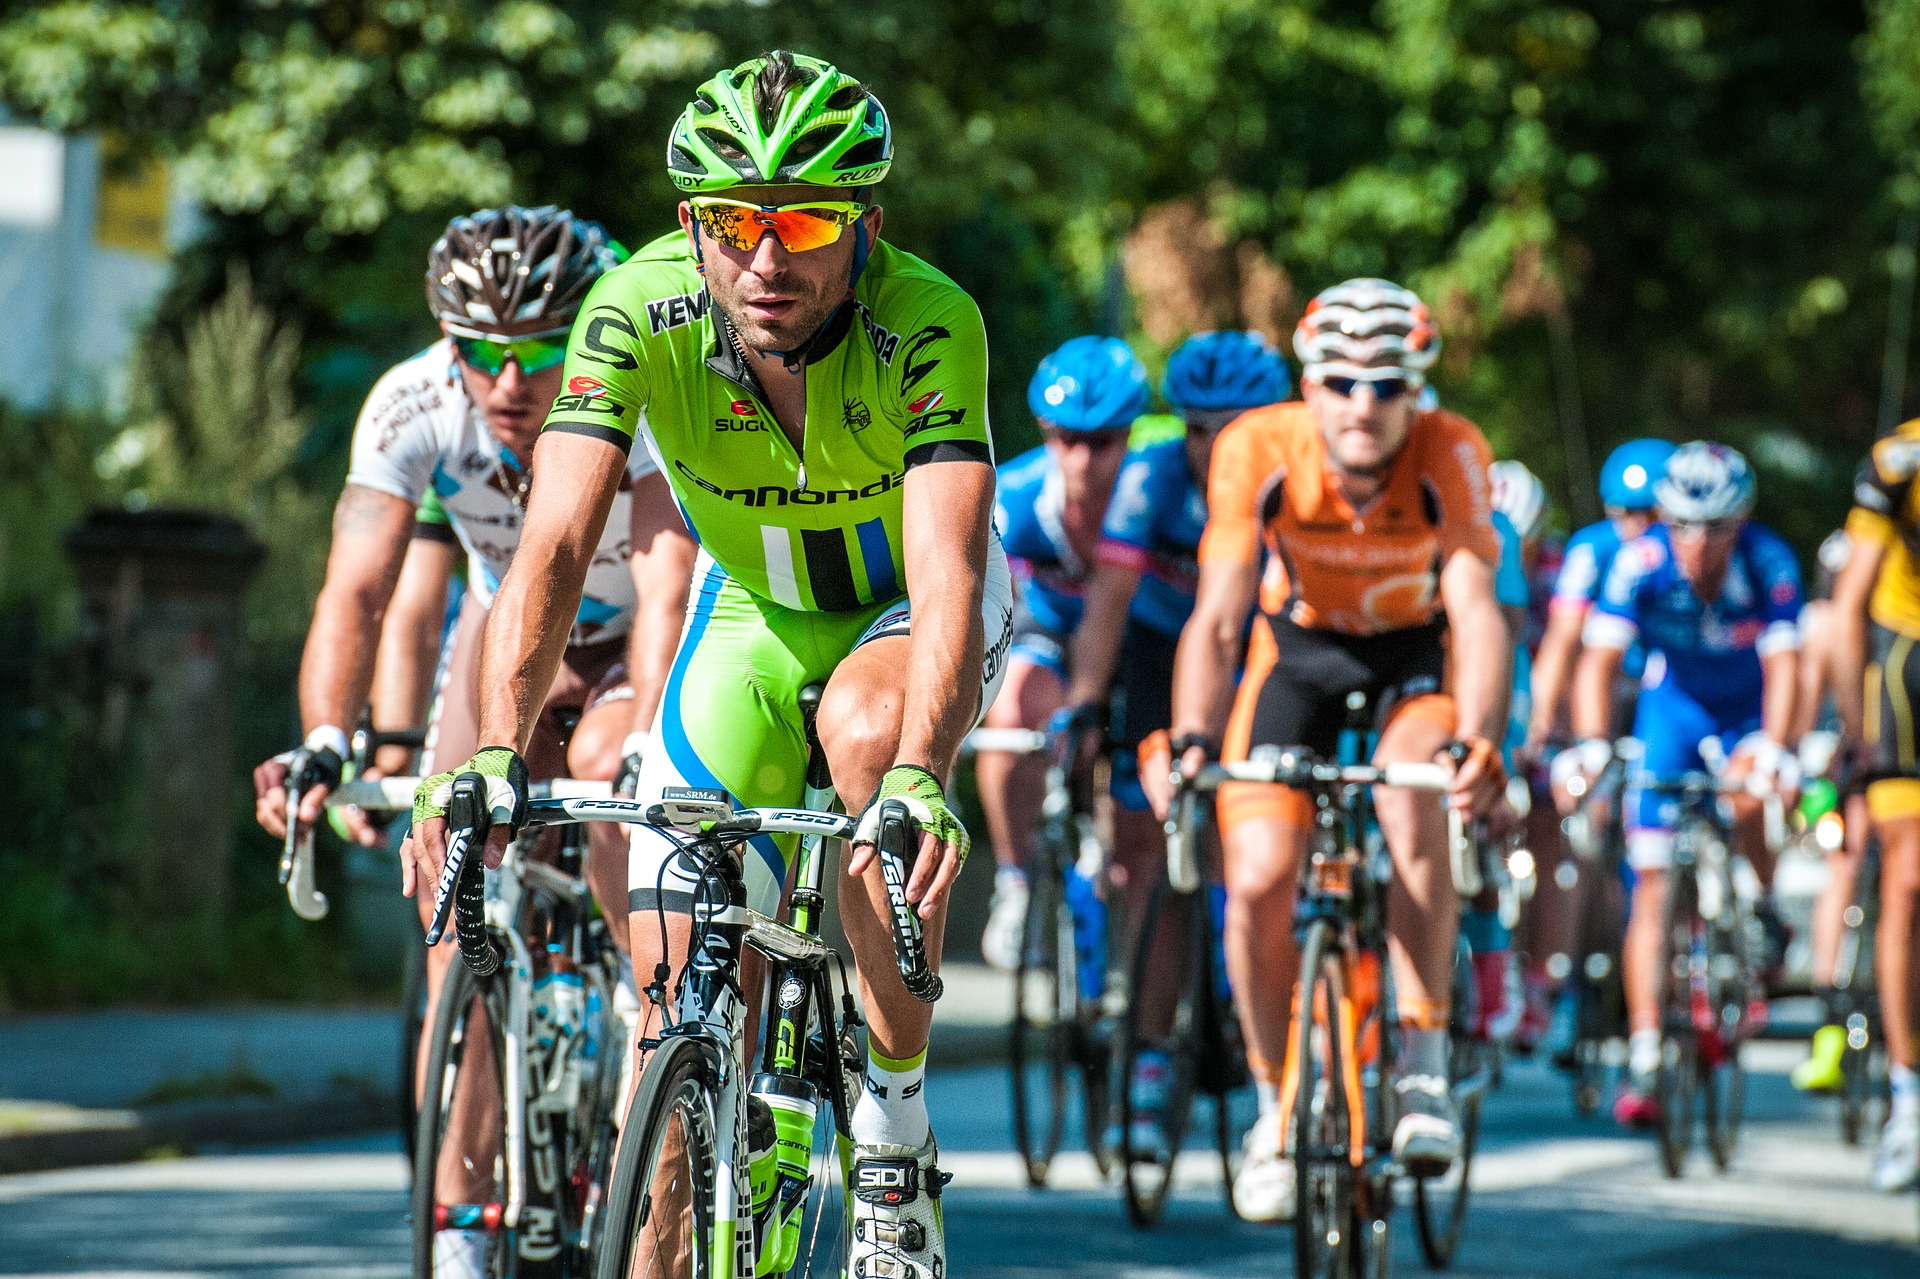 bicycle race in which the athletes are wearing best cycling gloves and other cycling gear